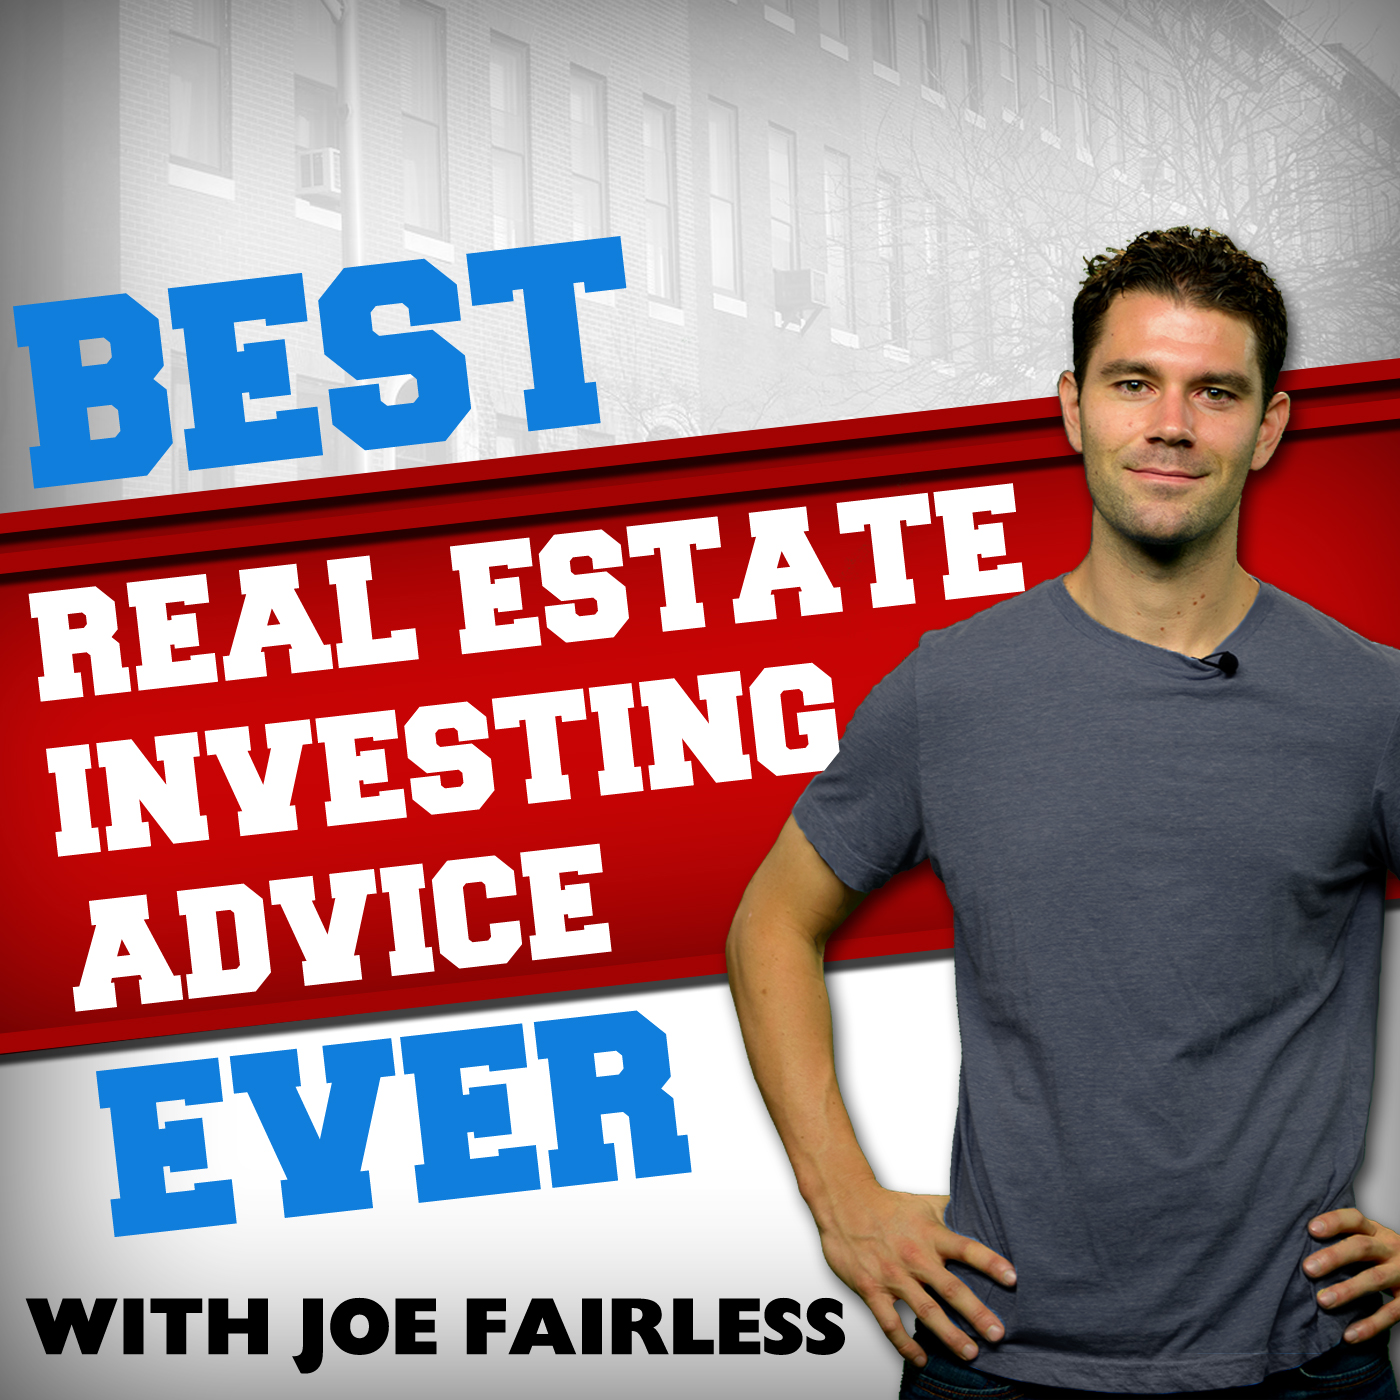 JF461: Best Online Lending Series Ever: Episode 1 of 2